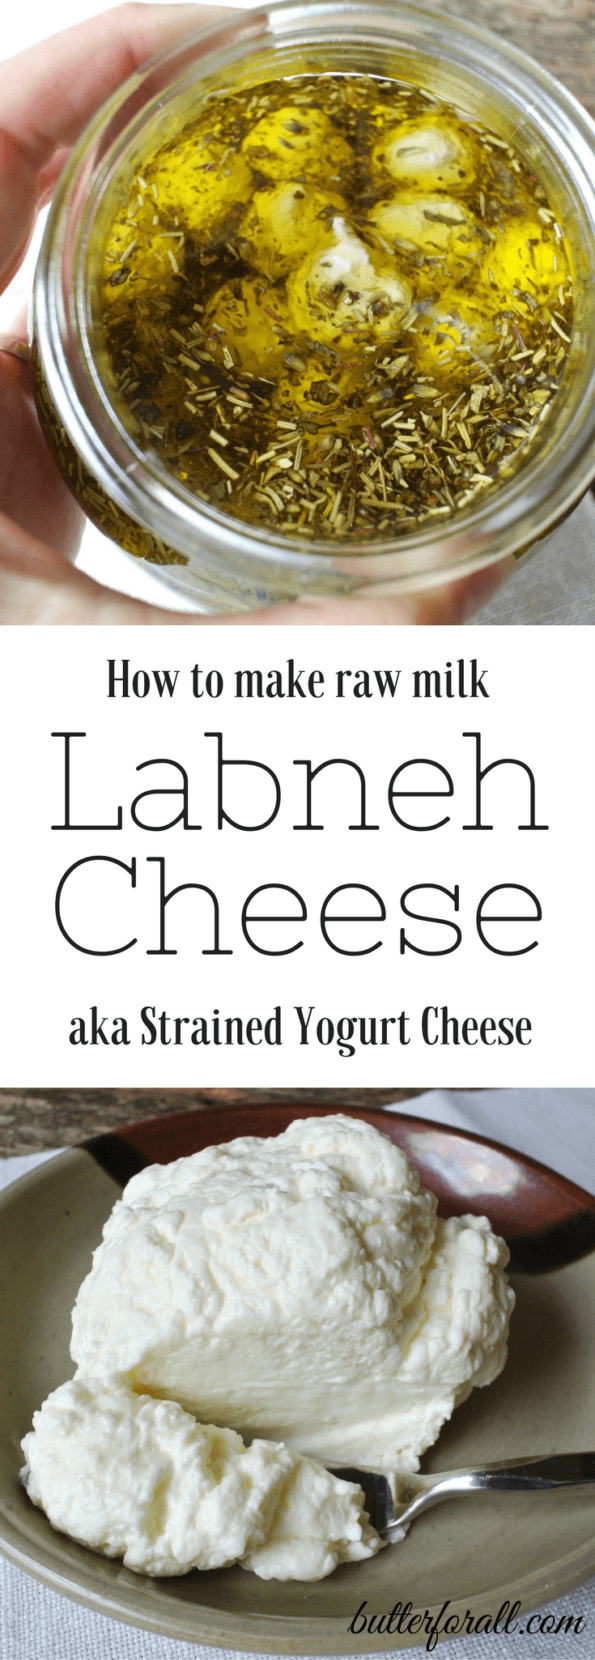 Raw Milk Labneh Cheese - Strained Yogurt